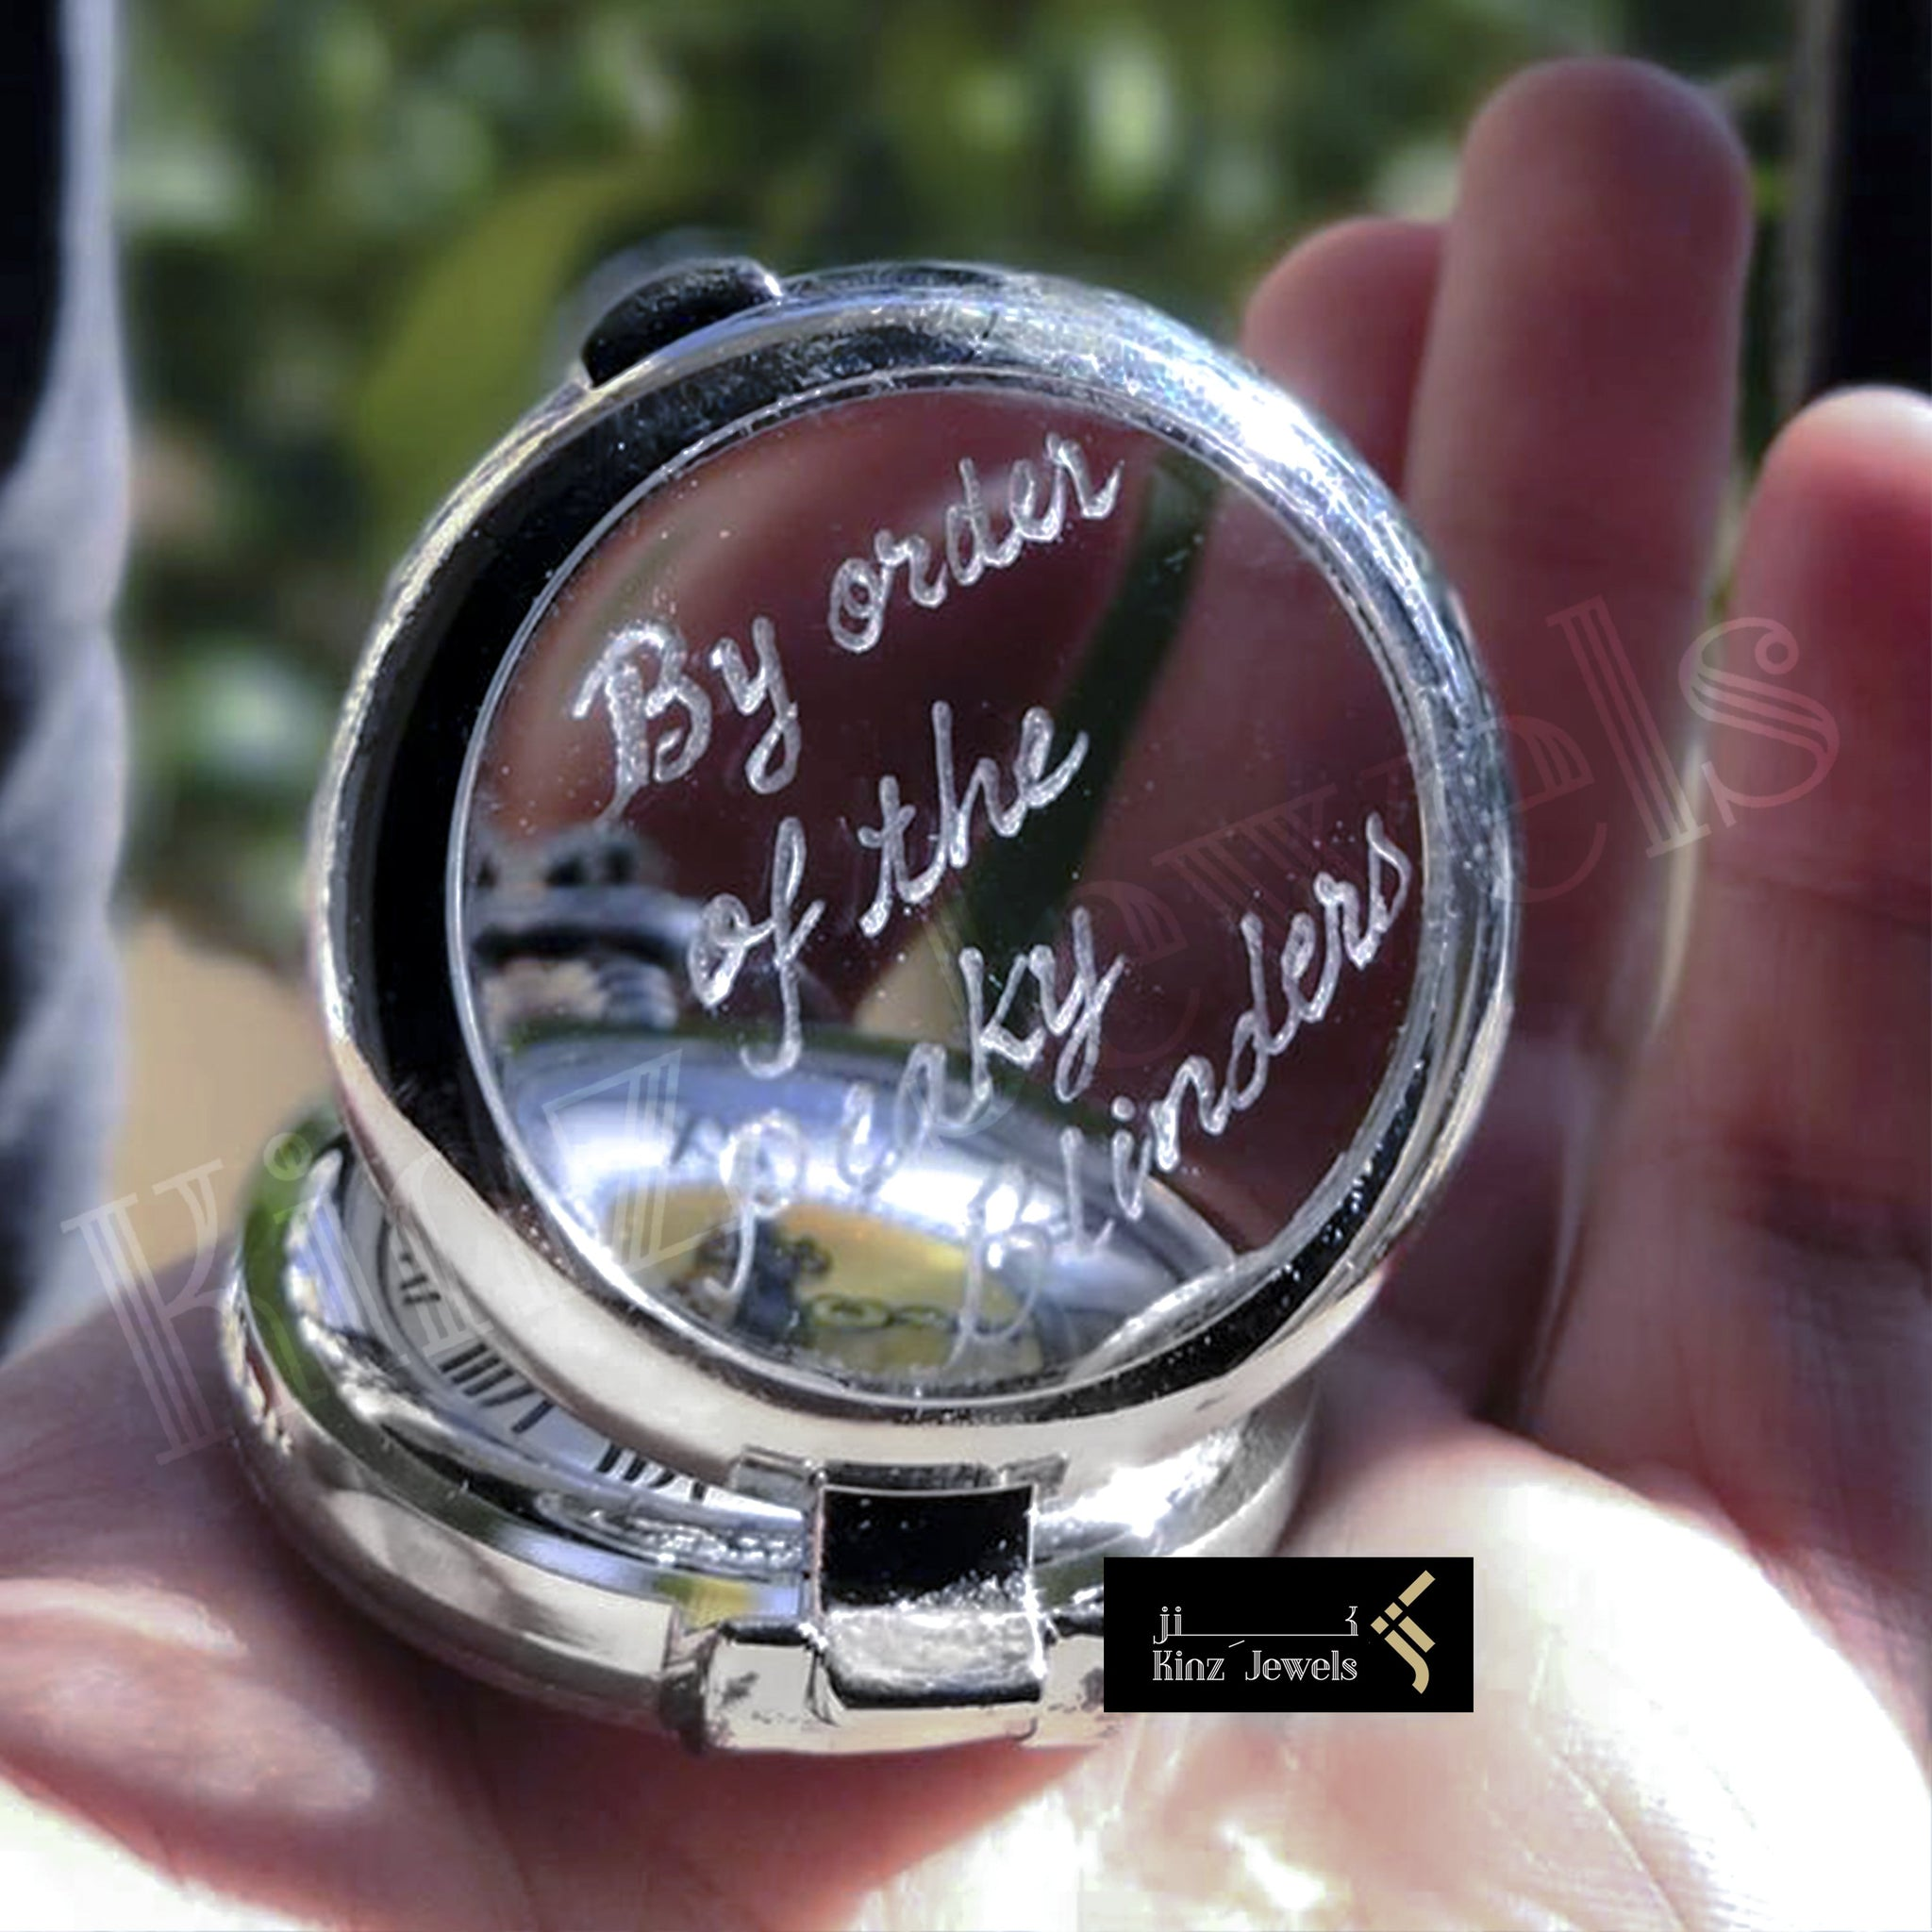 kinzjewels - Personalized Silver and Chrome Magnifier Pocket Watch